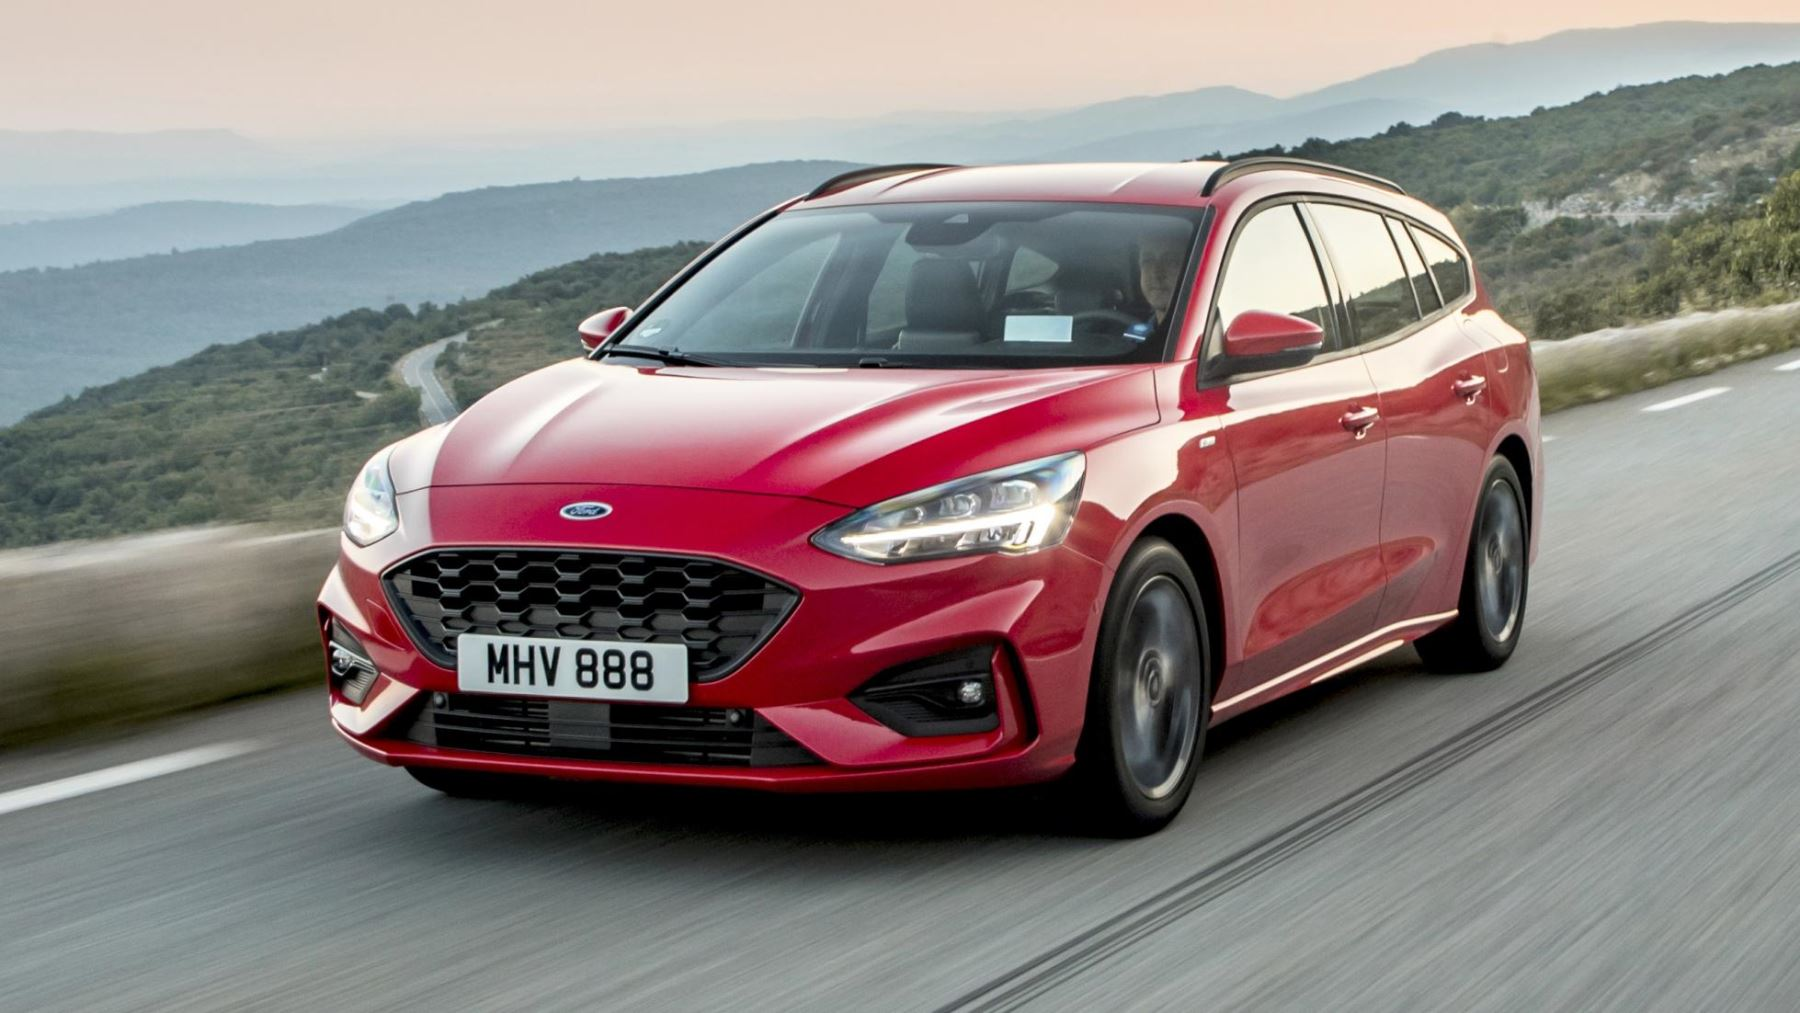 Ford Focus Active X 1.5 Diesel 120ps image 8